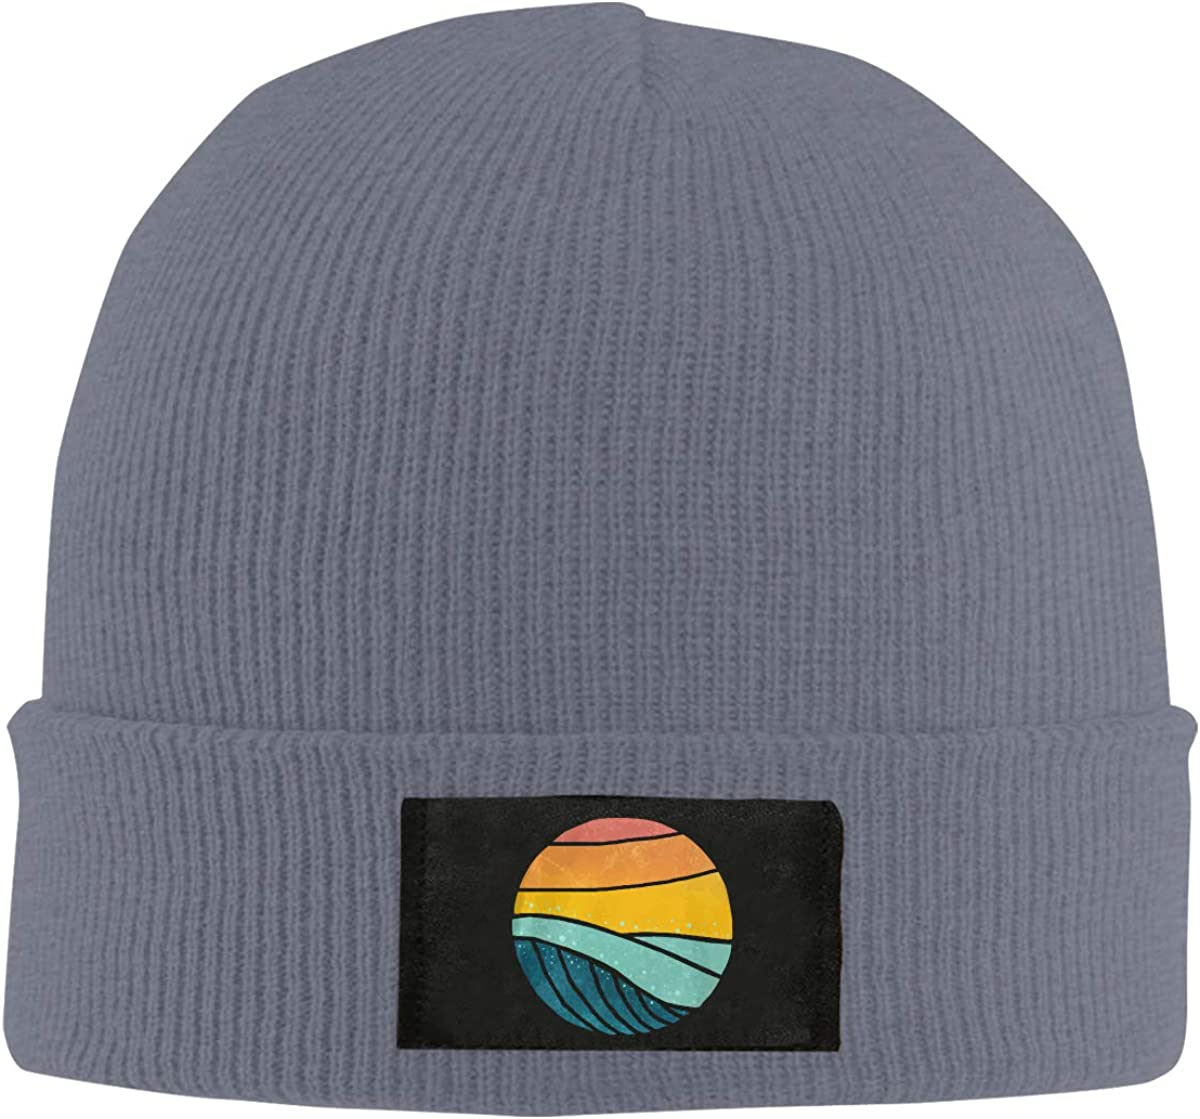 100/% Acrylic Daily Beanies Cap Unisex Vintage Sea Wave On Sunset Knitted Hat